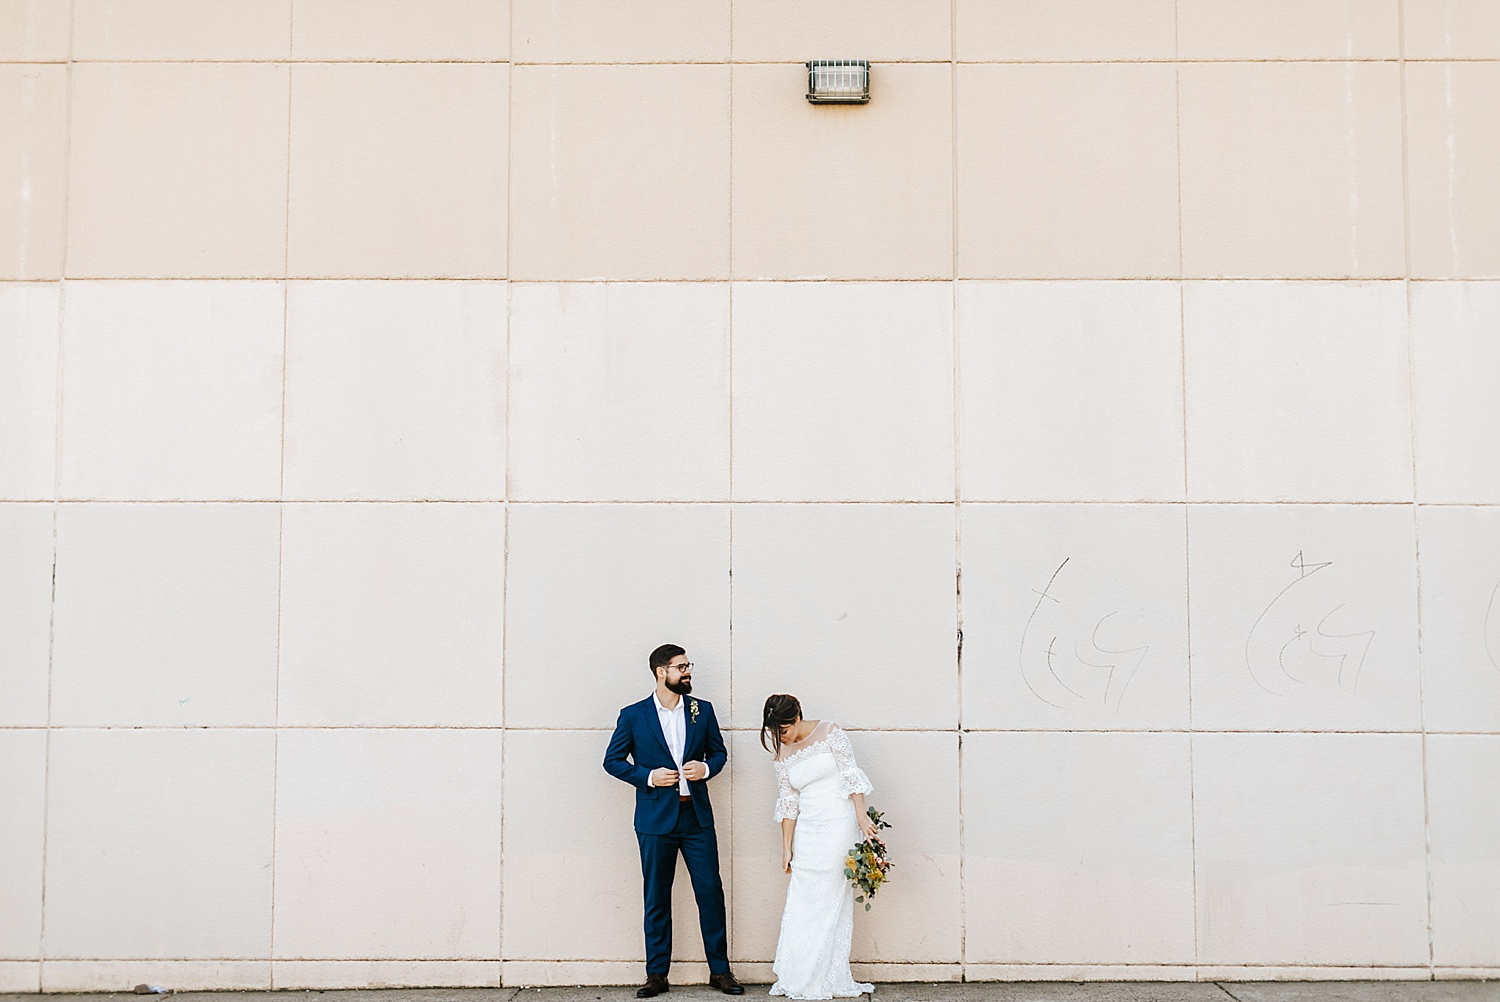 Bride and groom portraits in fishtown, philadelphia